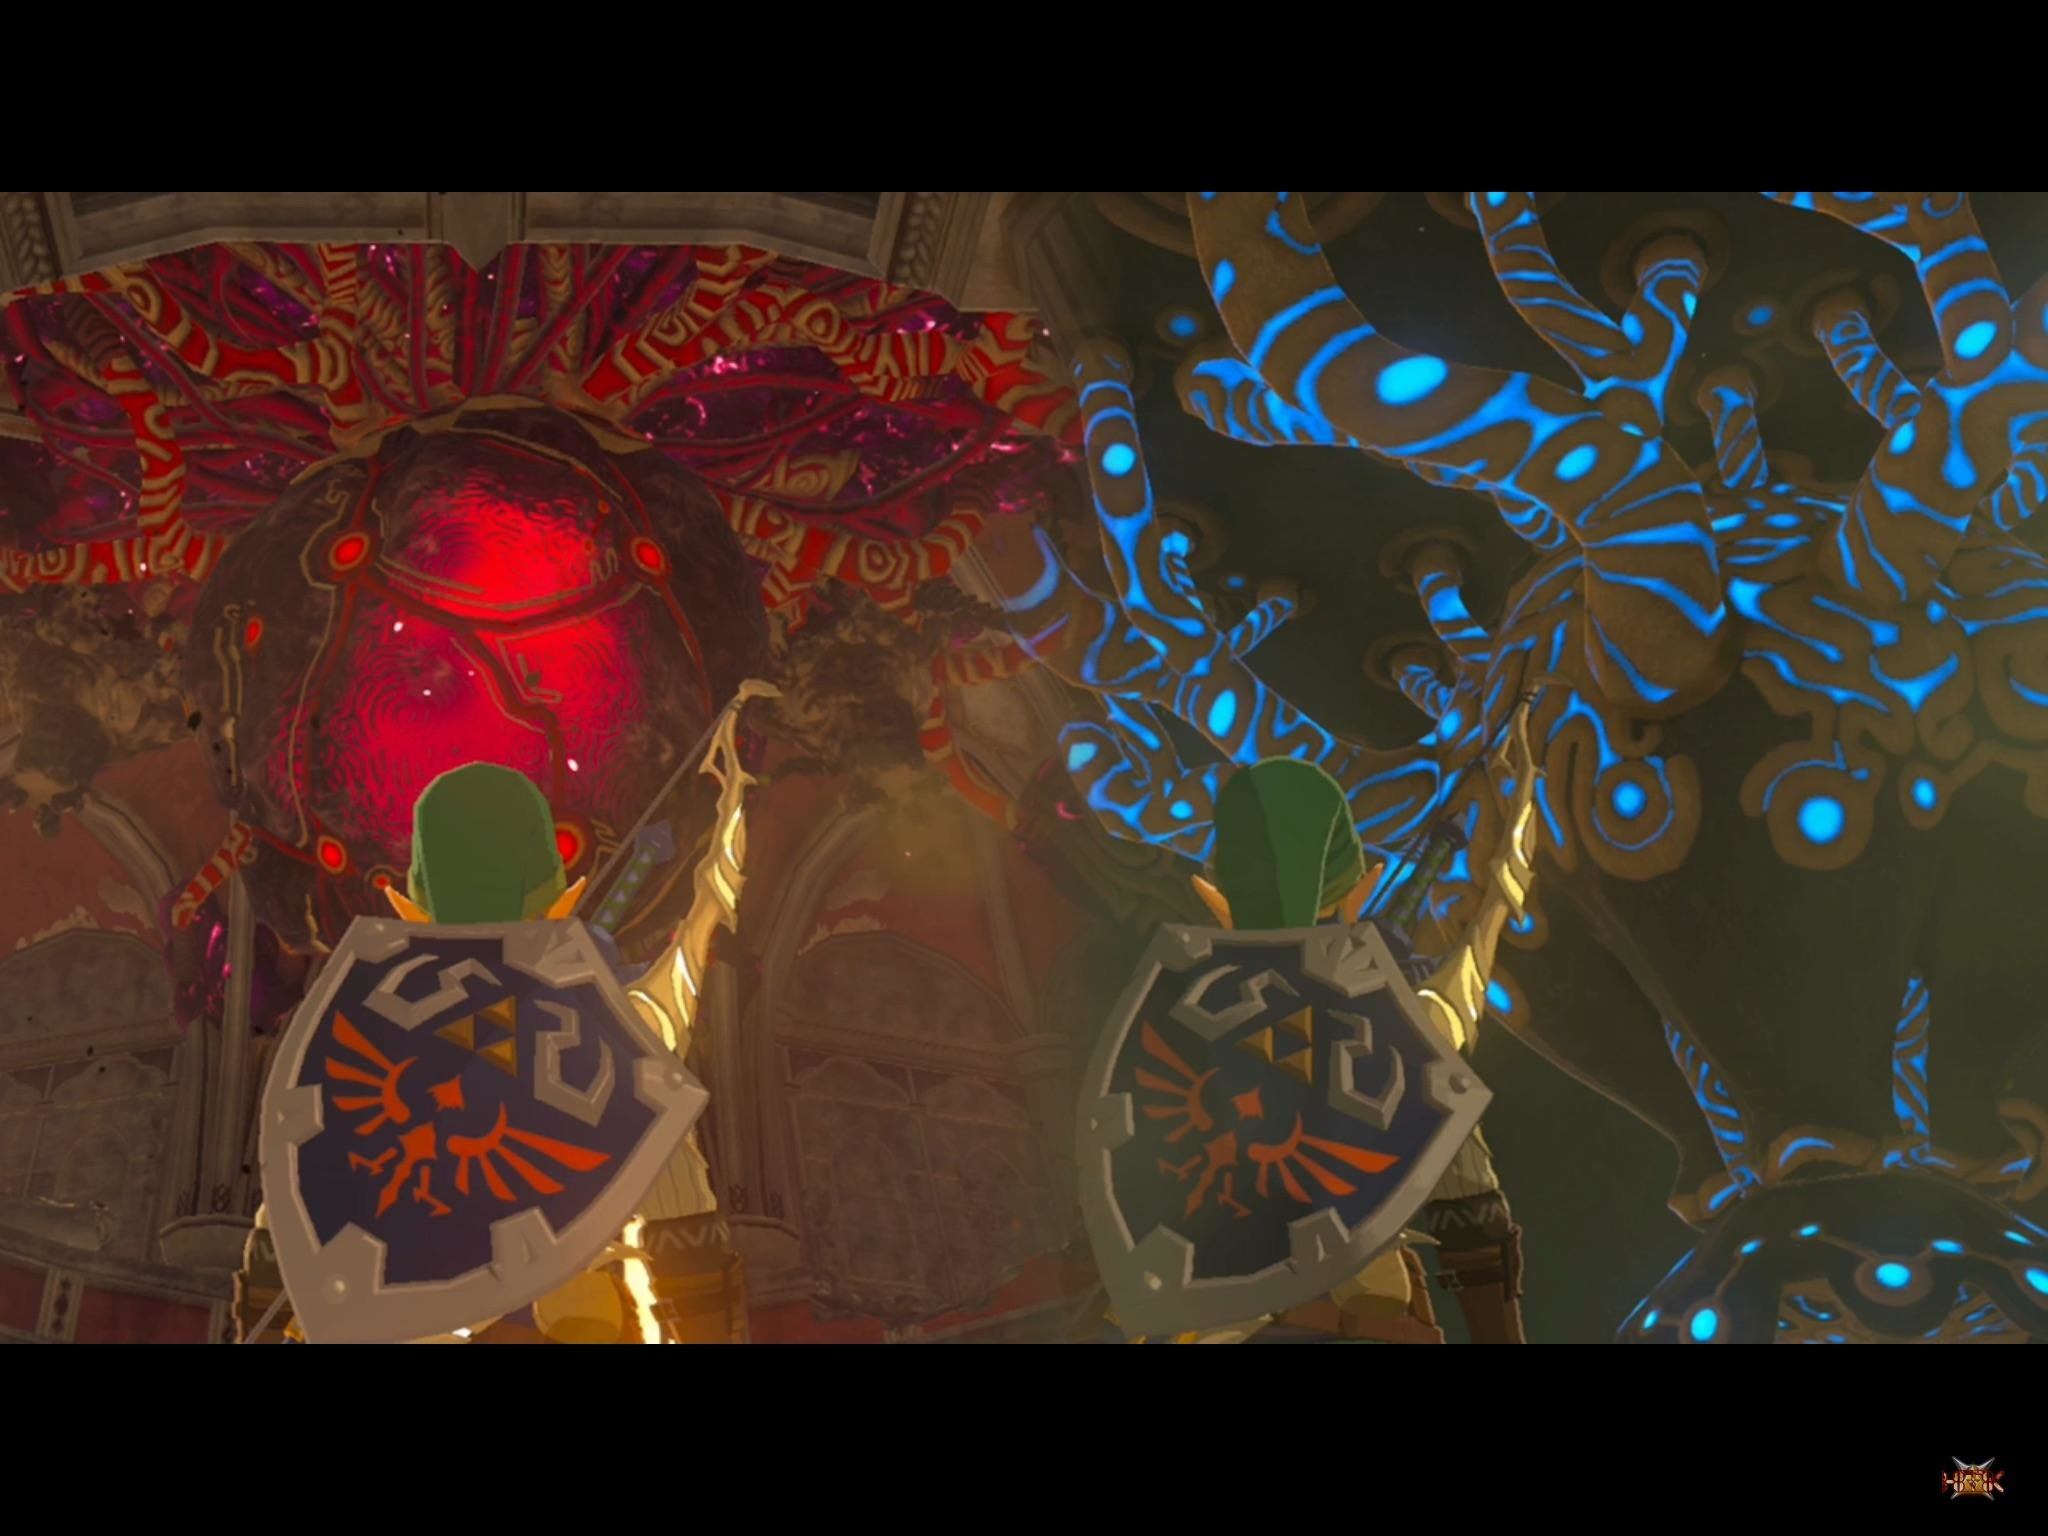 [Spoilers] this blew my mind… calamity ganon cocoon and shrine of  resurrection …